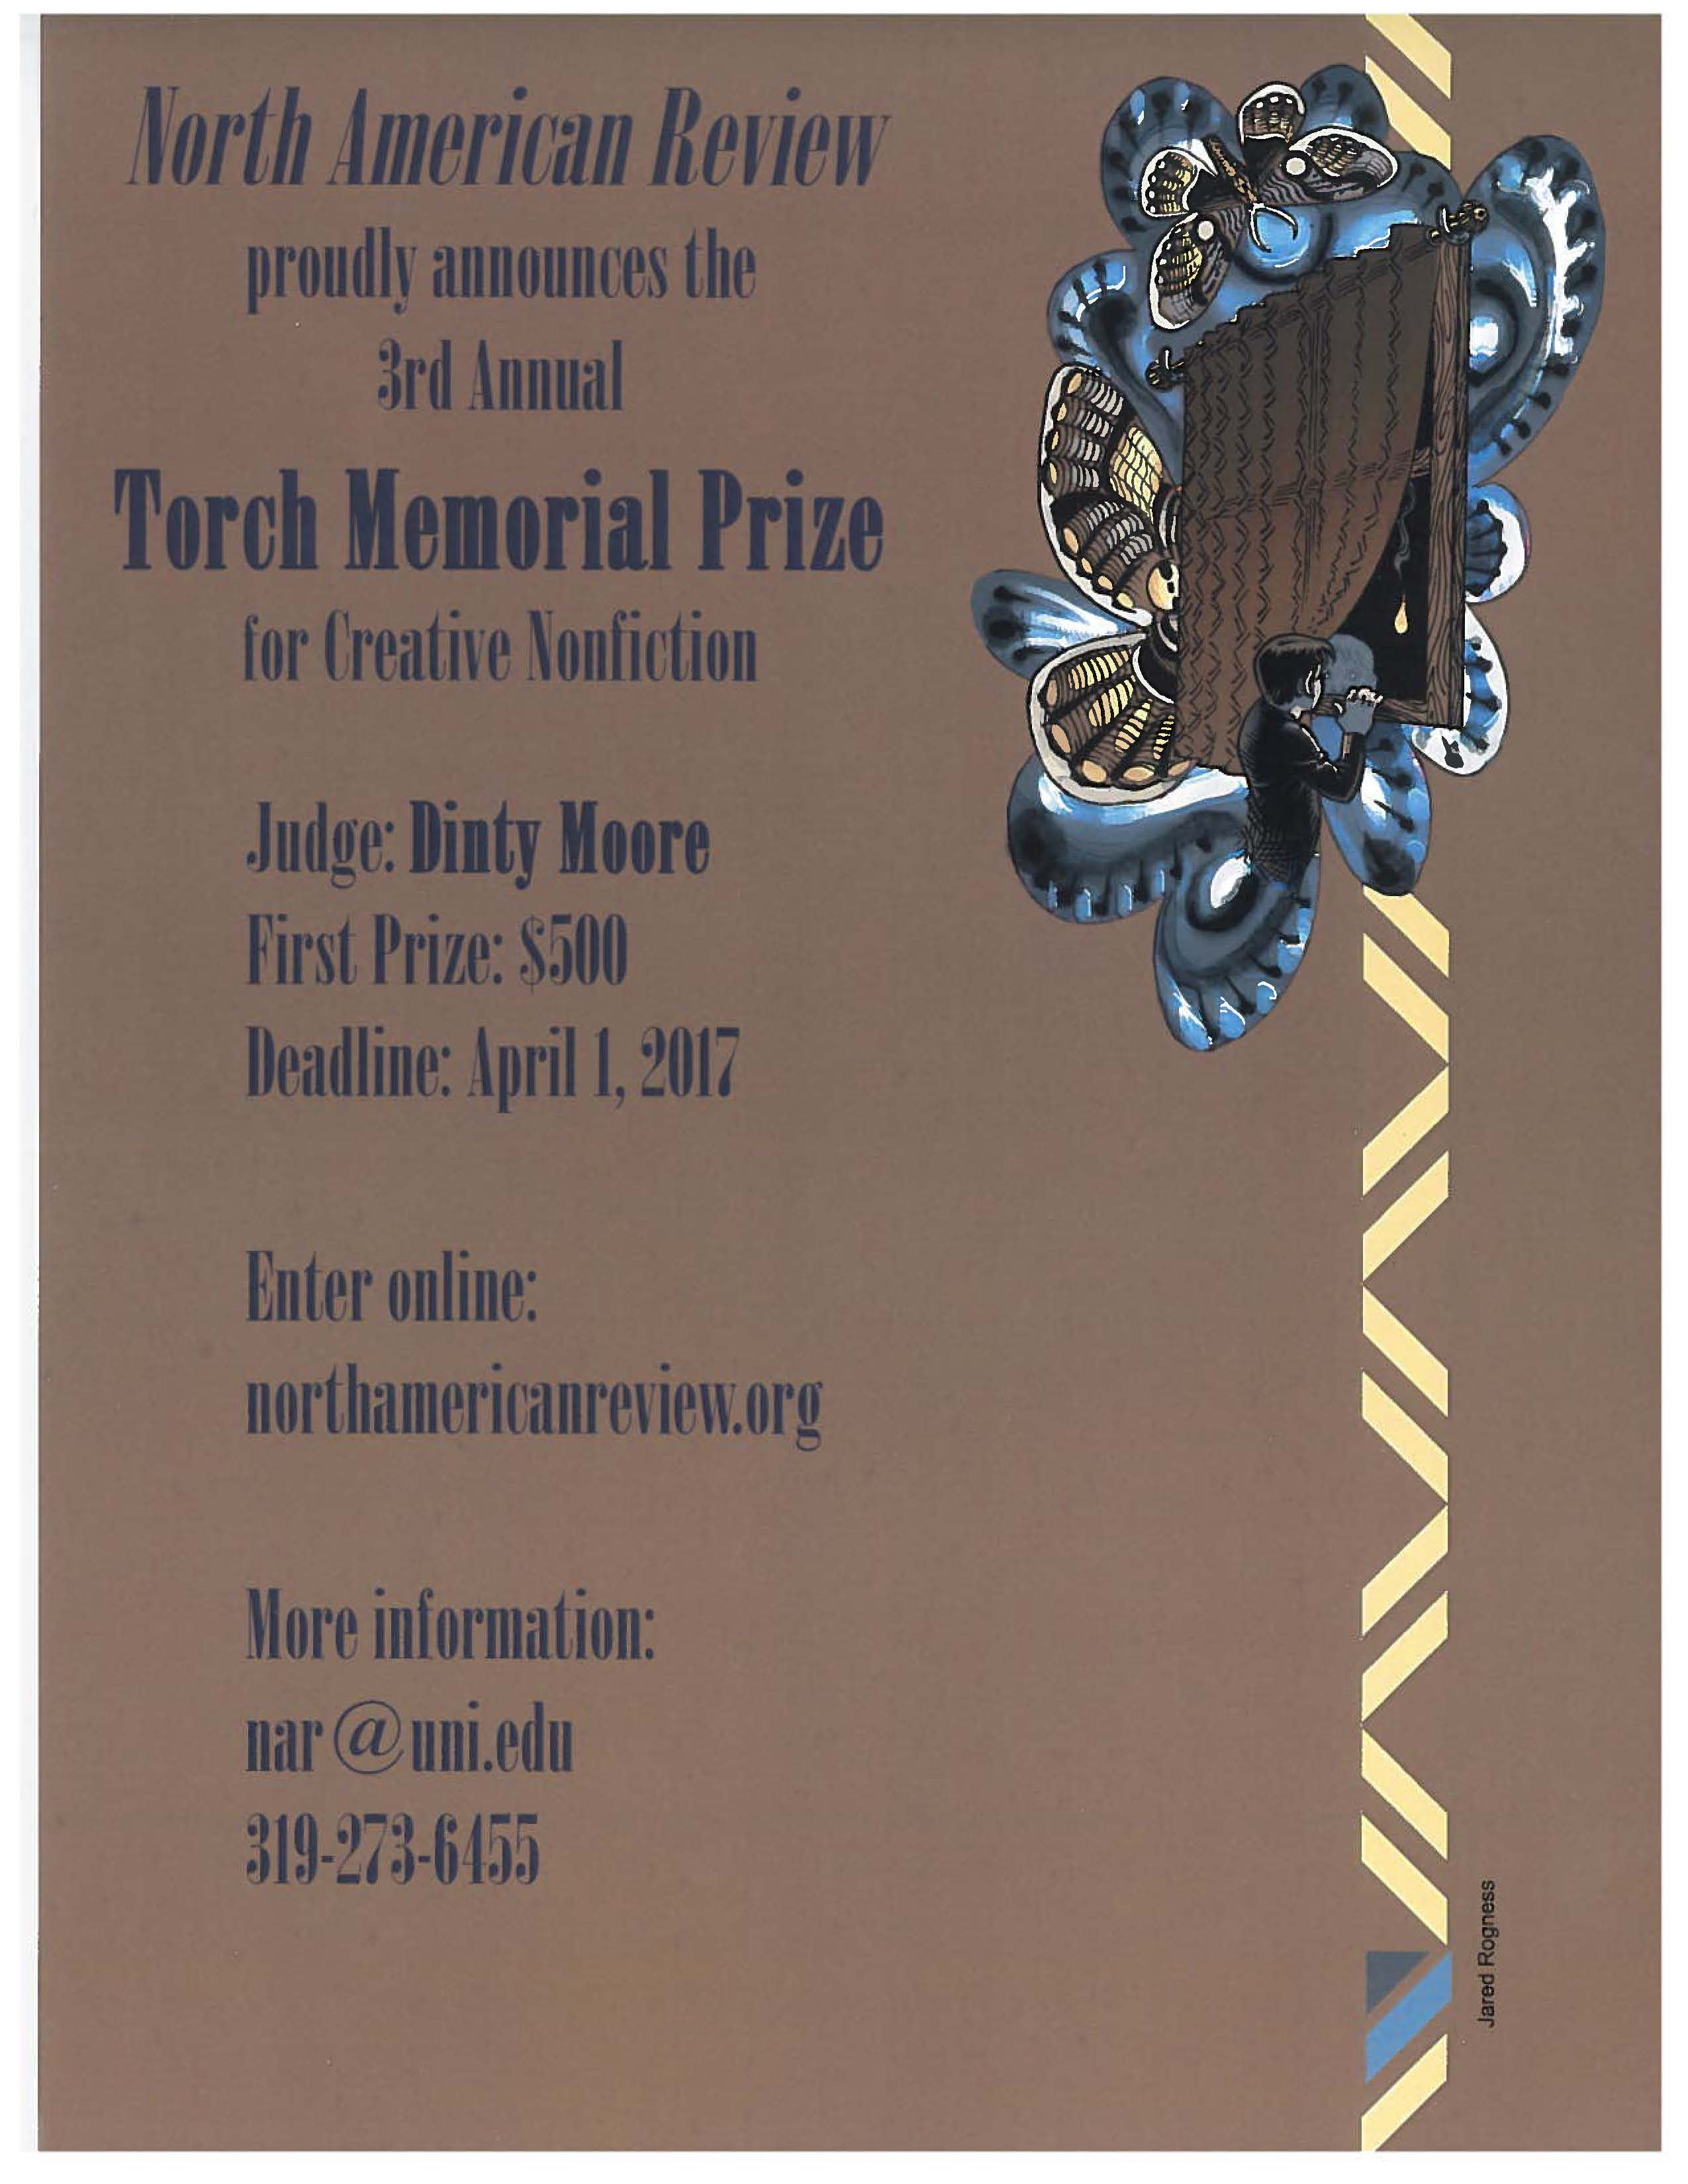 North American Review - Torch Memorial Prize